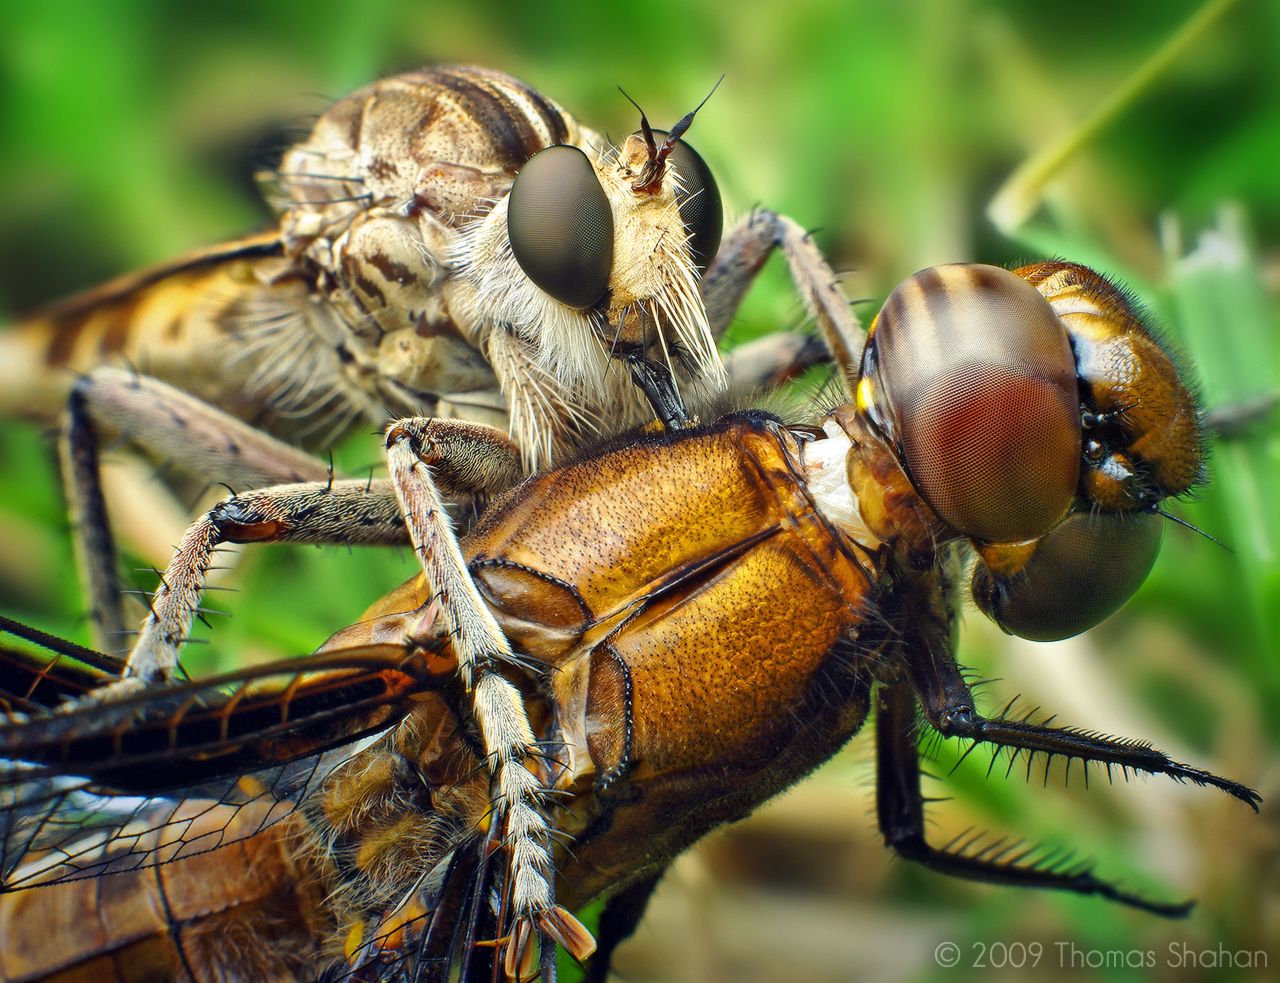 Robber Fly (Triorla interrupta) with Dragonfly (Plathemis lydia)